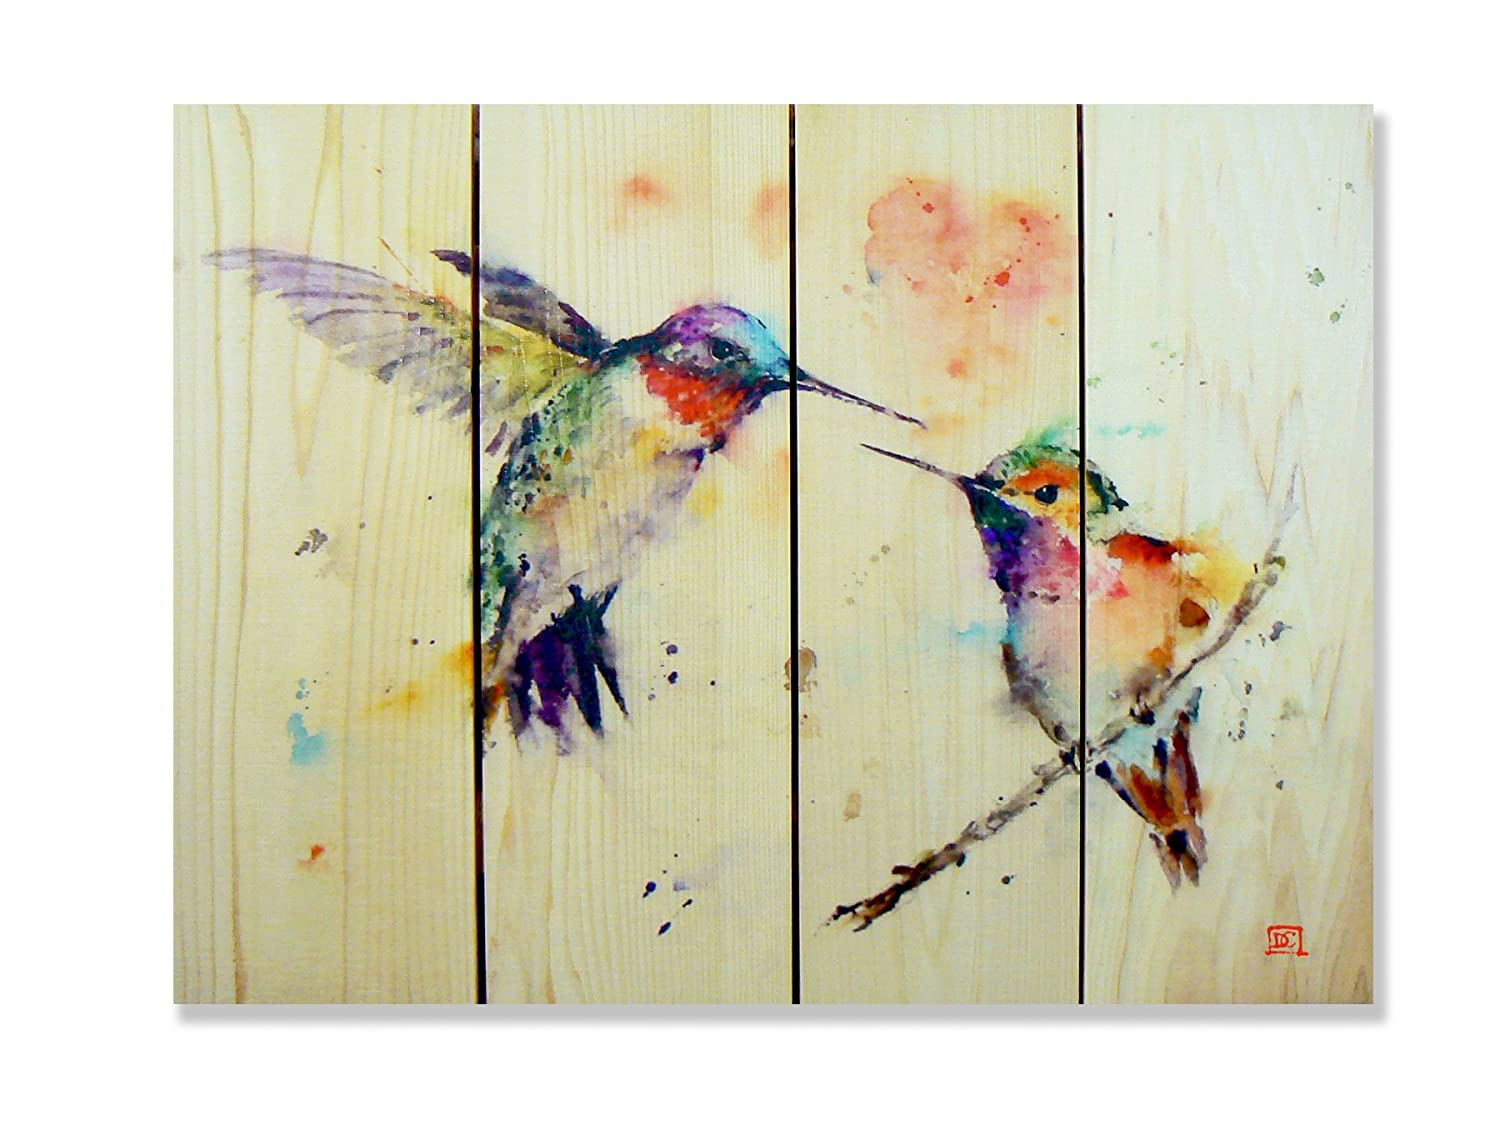 Amazon.com : Gizaun Art Signature Series No.1 Love Bird Inside ...